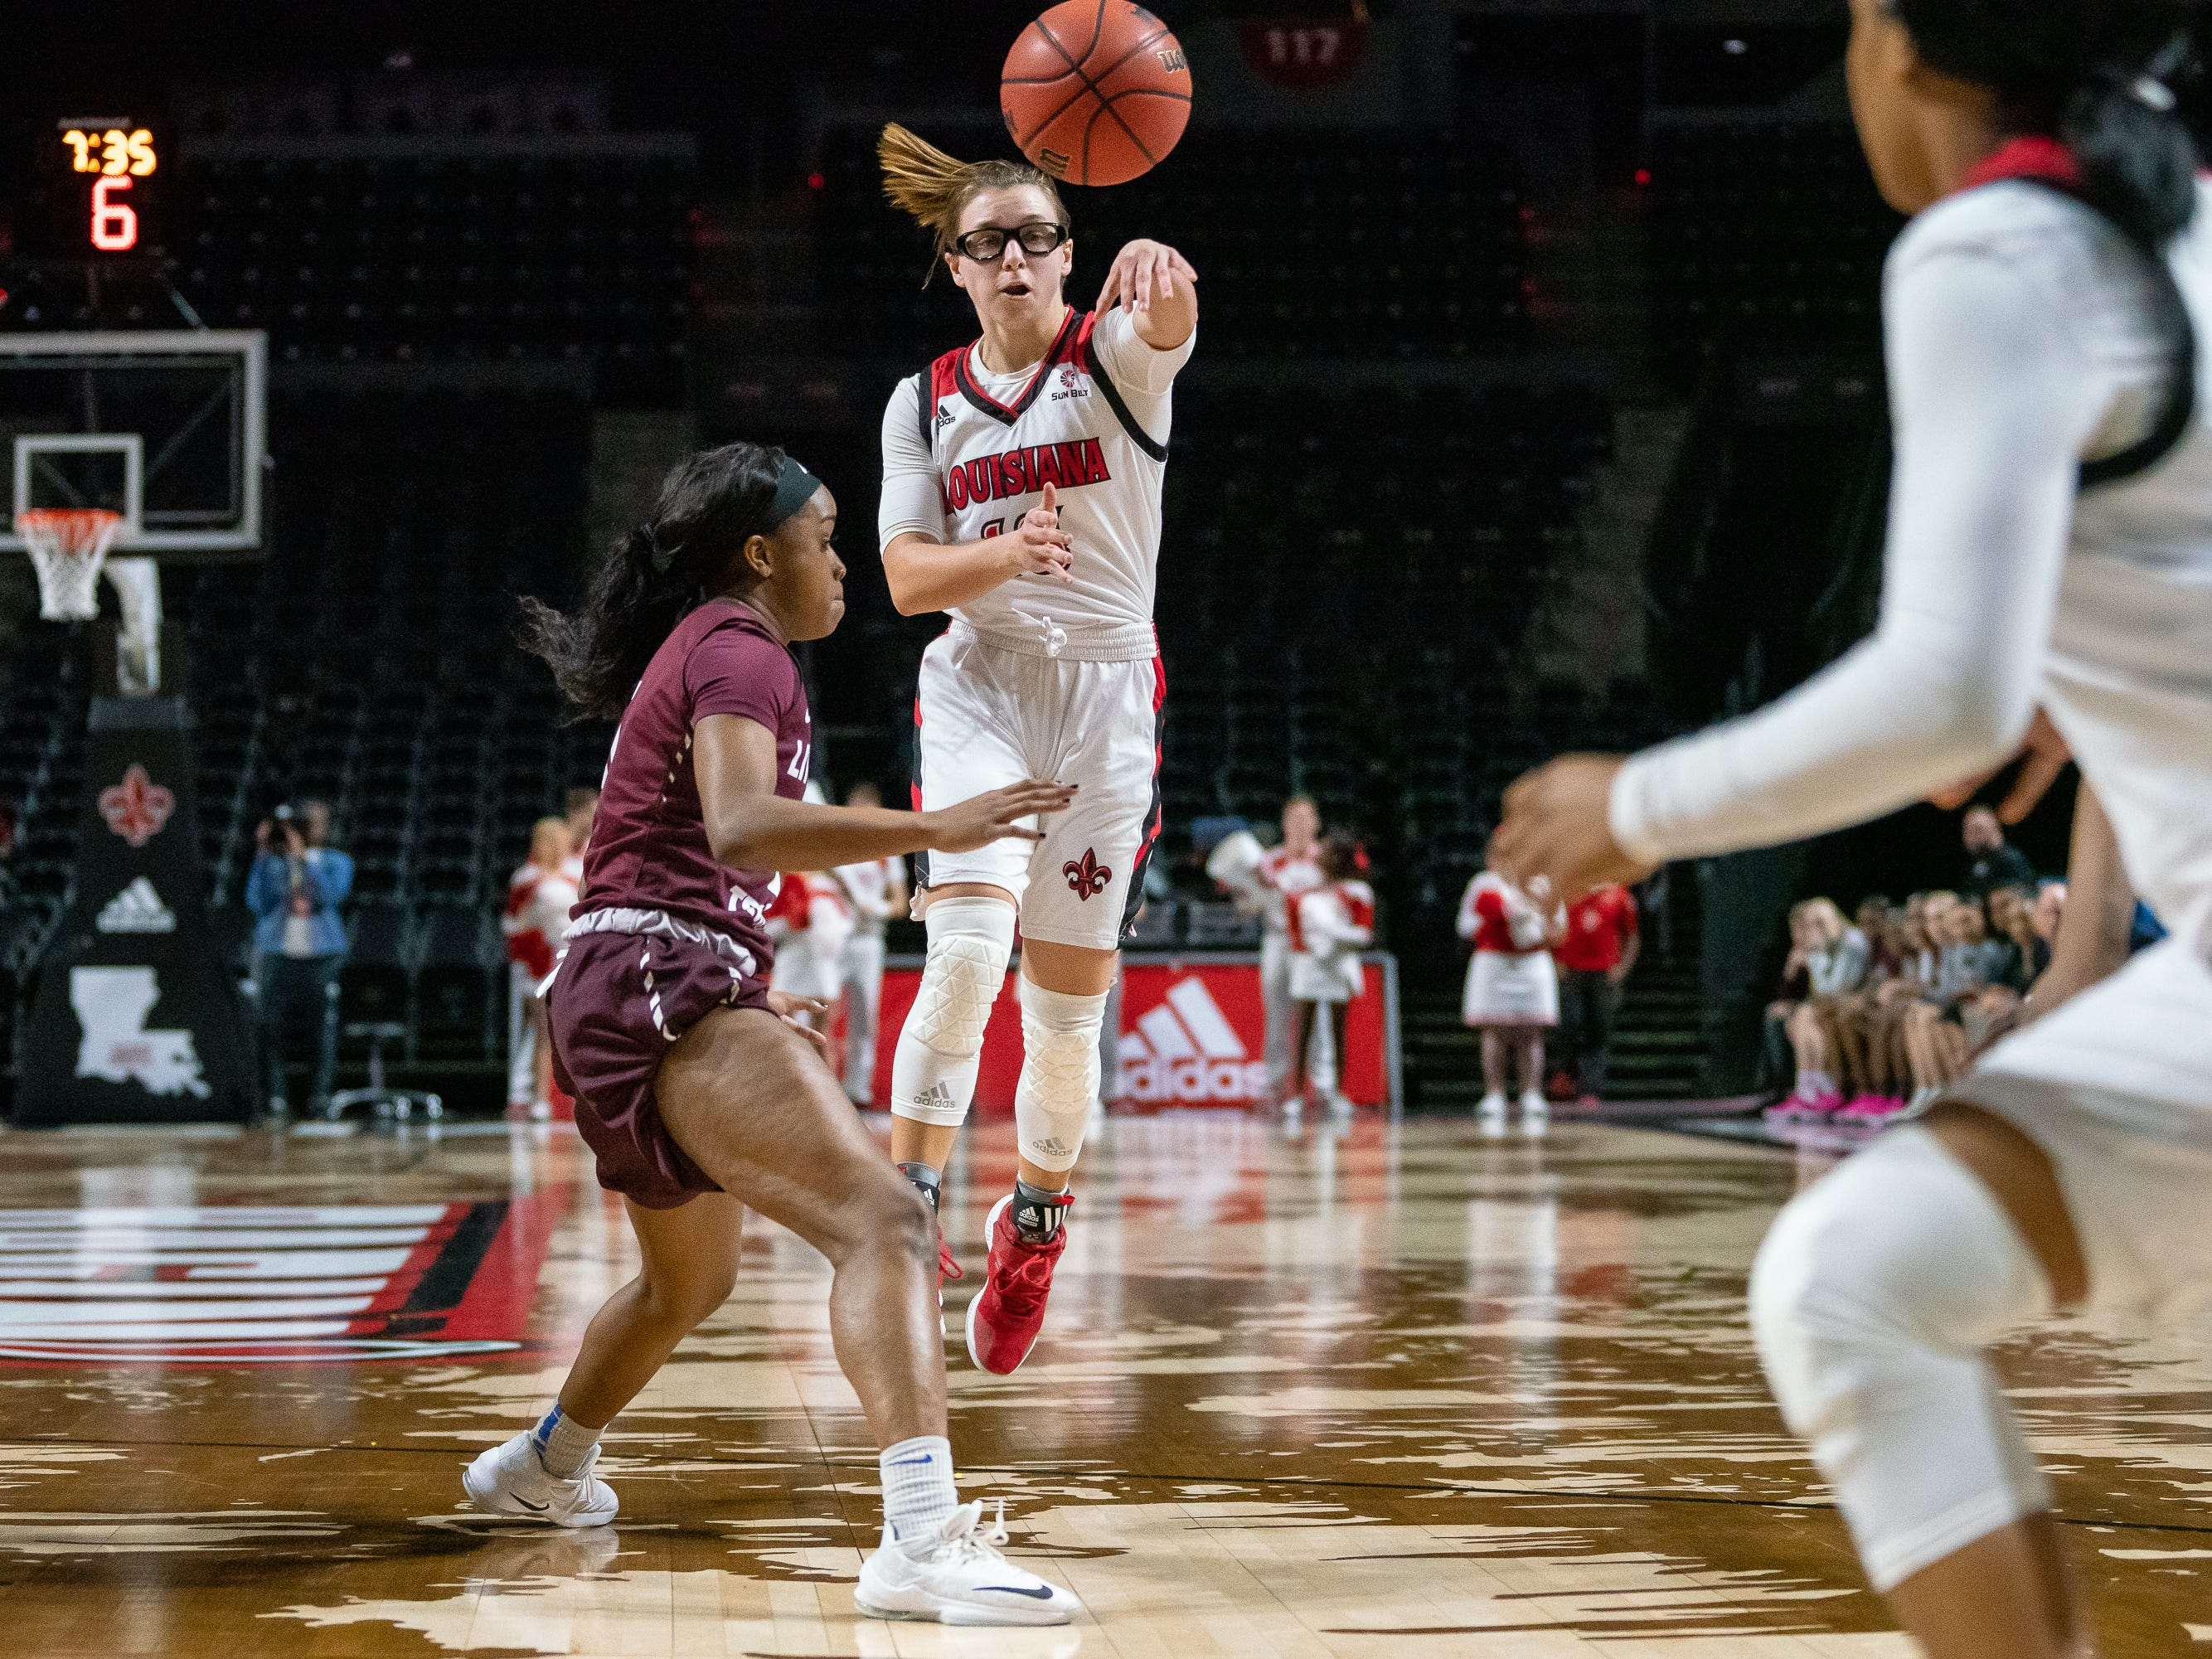 UL's Andrea Cournoyer passes the ball to a teammate as the Ragin' Cajuns take on the Little Rock Trojans at the Cajundome on Thursday, March 7, 2019.